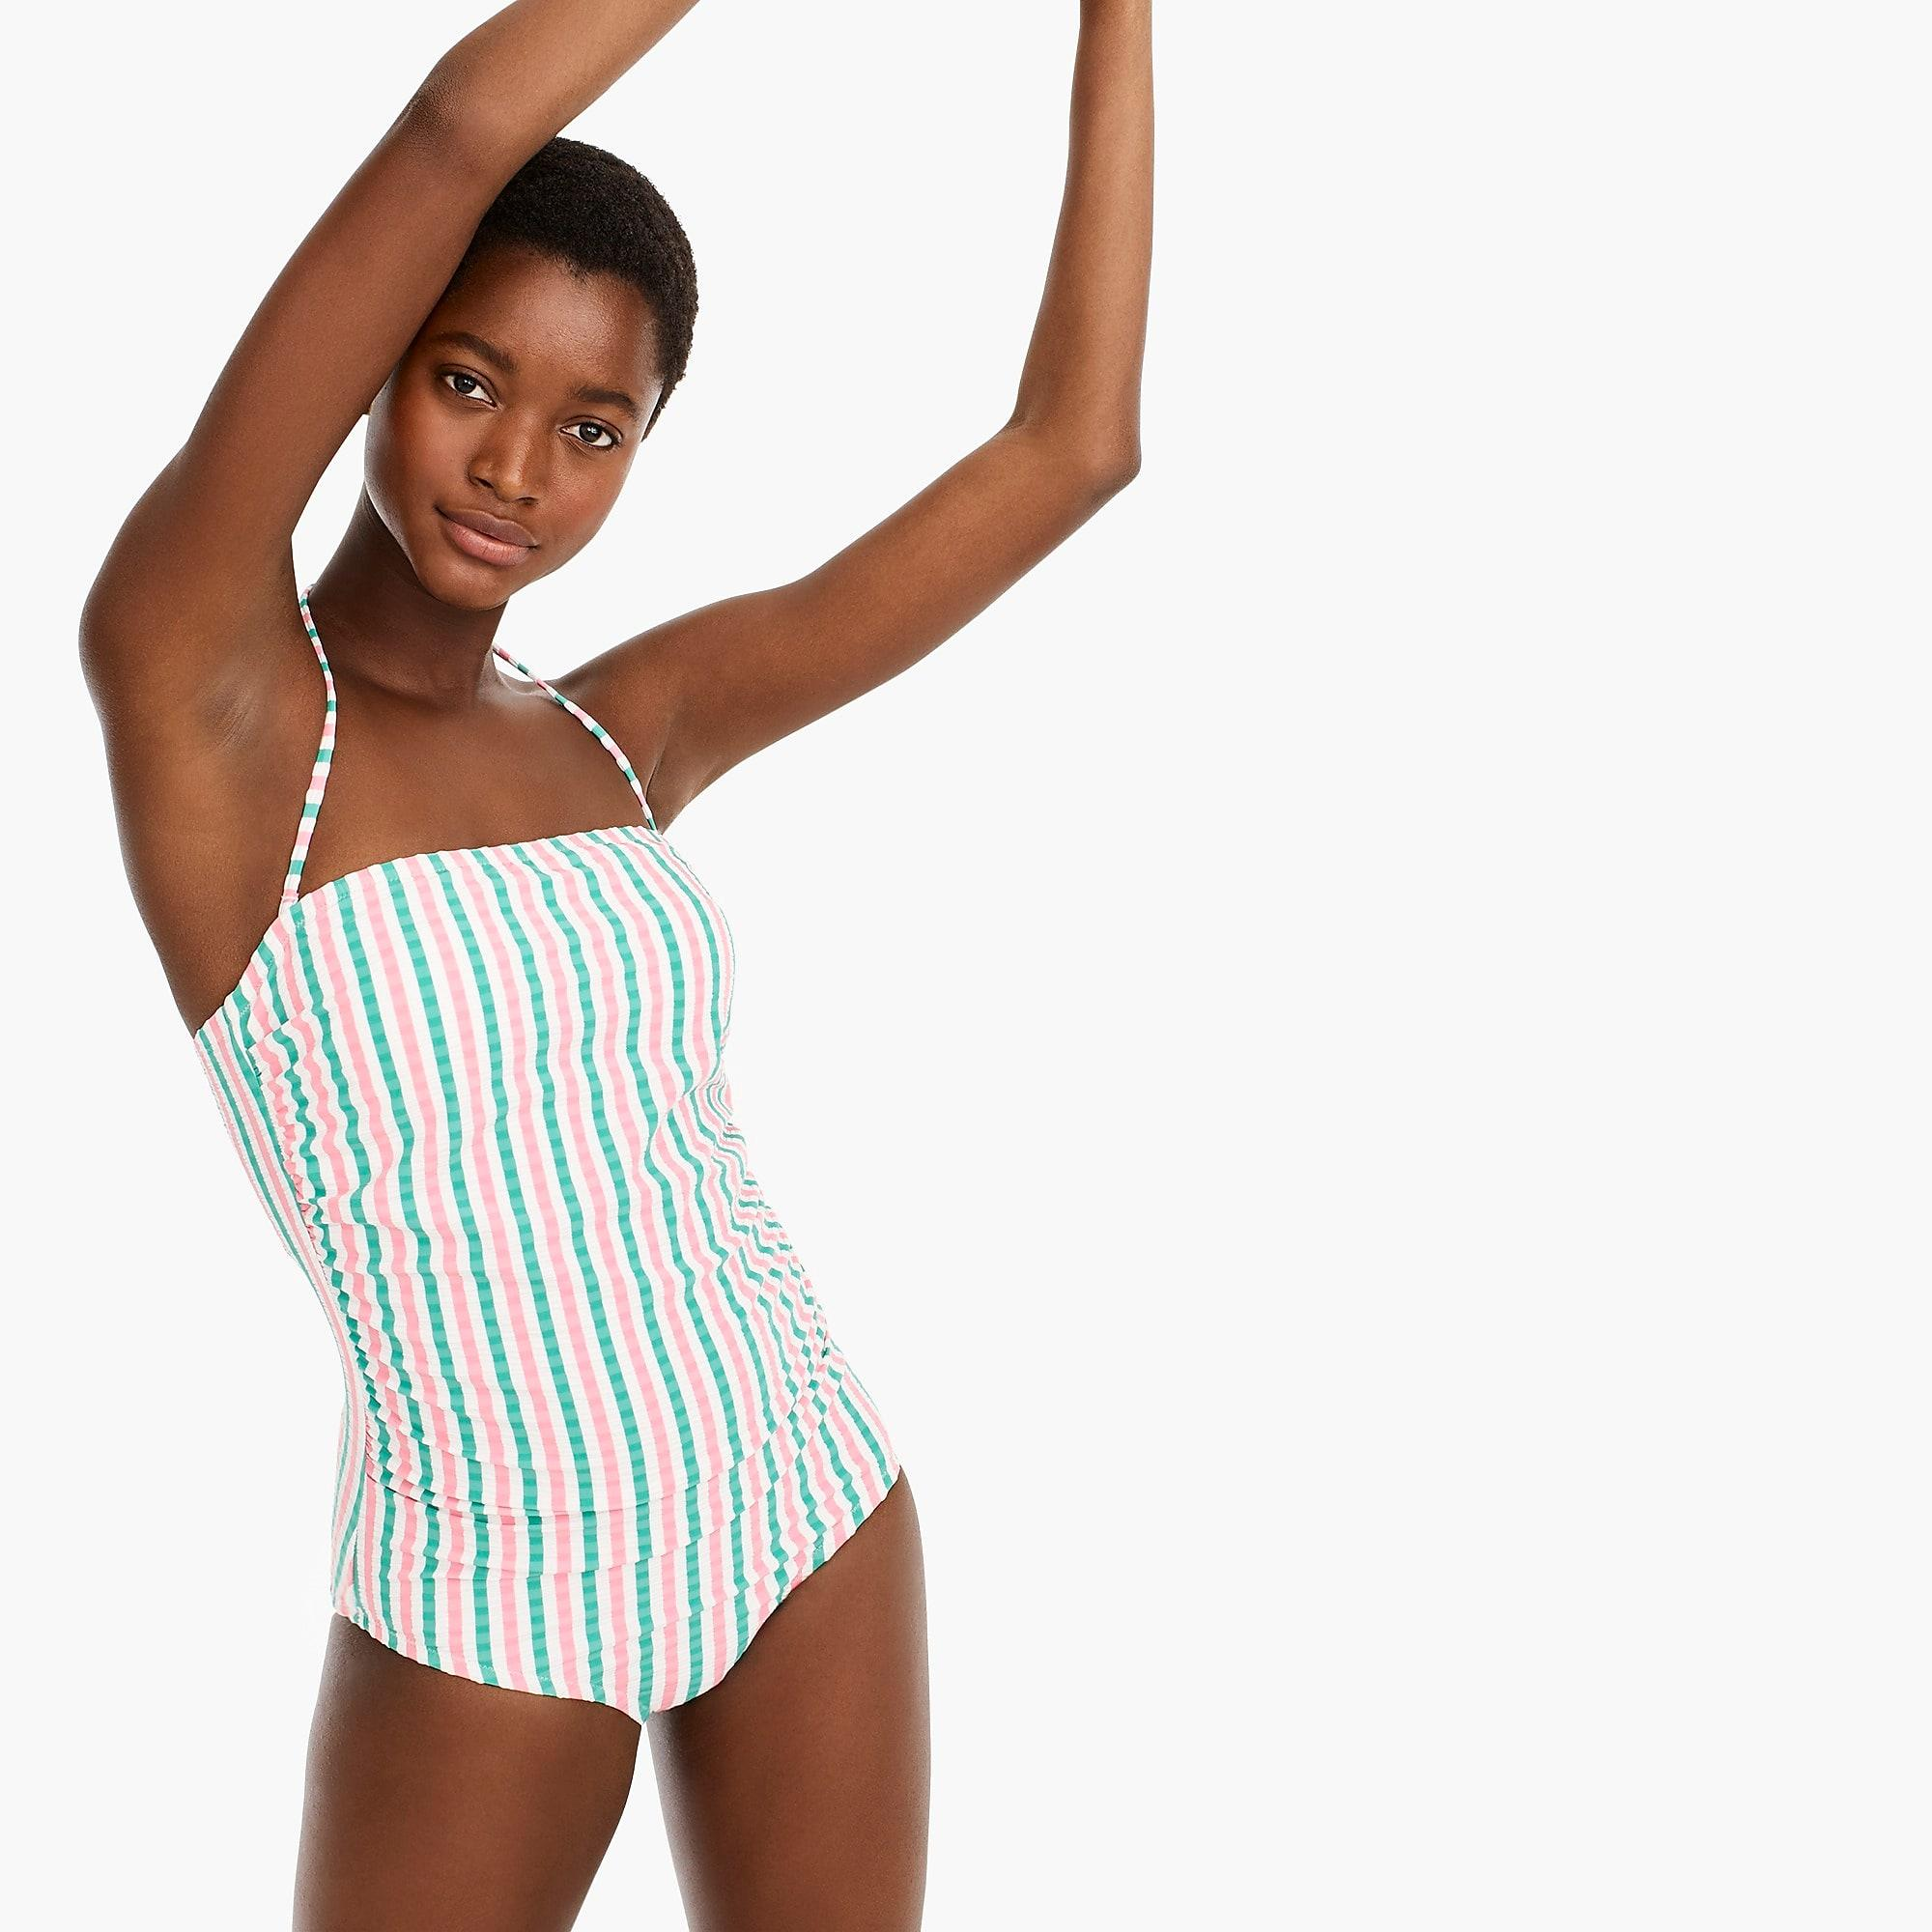 b7150ff83d J.Crew Ruched Bandeau One-piece Swimsuit In Suckered Contrast Stripe ...